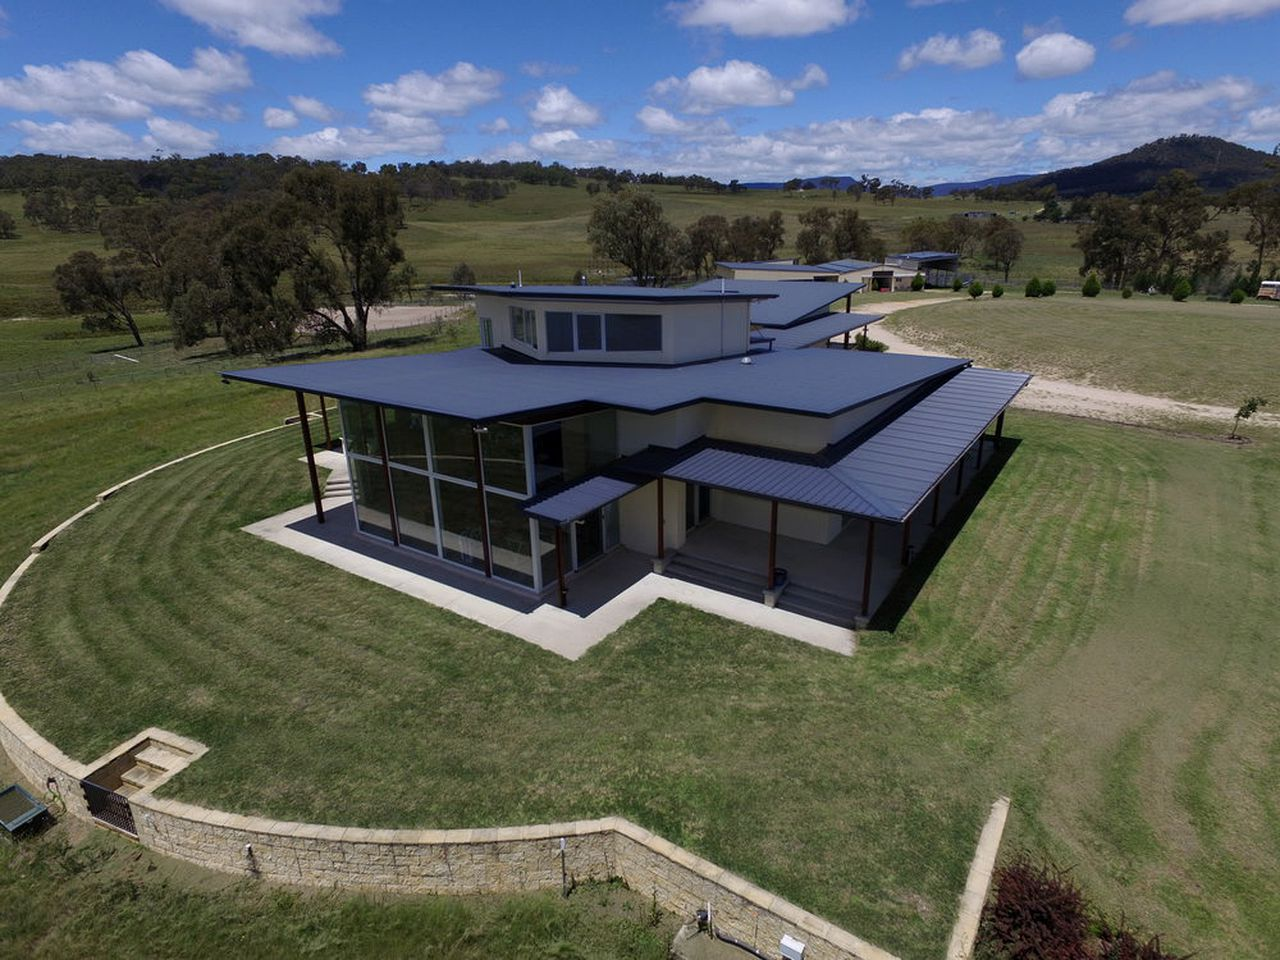 Nature Lodges (Tenterfield, New South Wales, Australia)